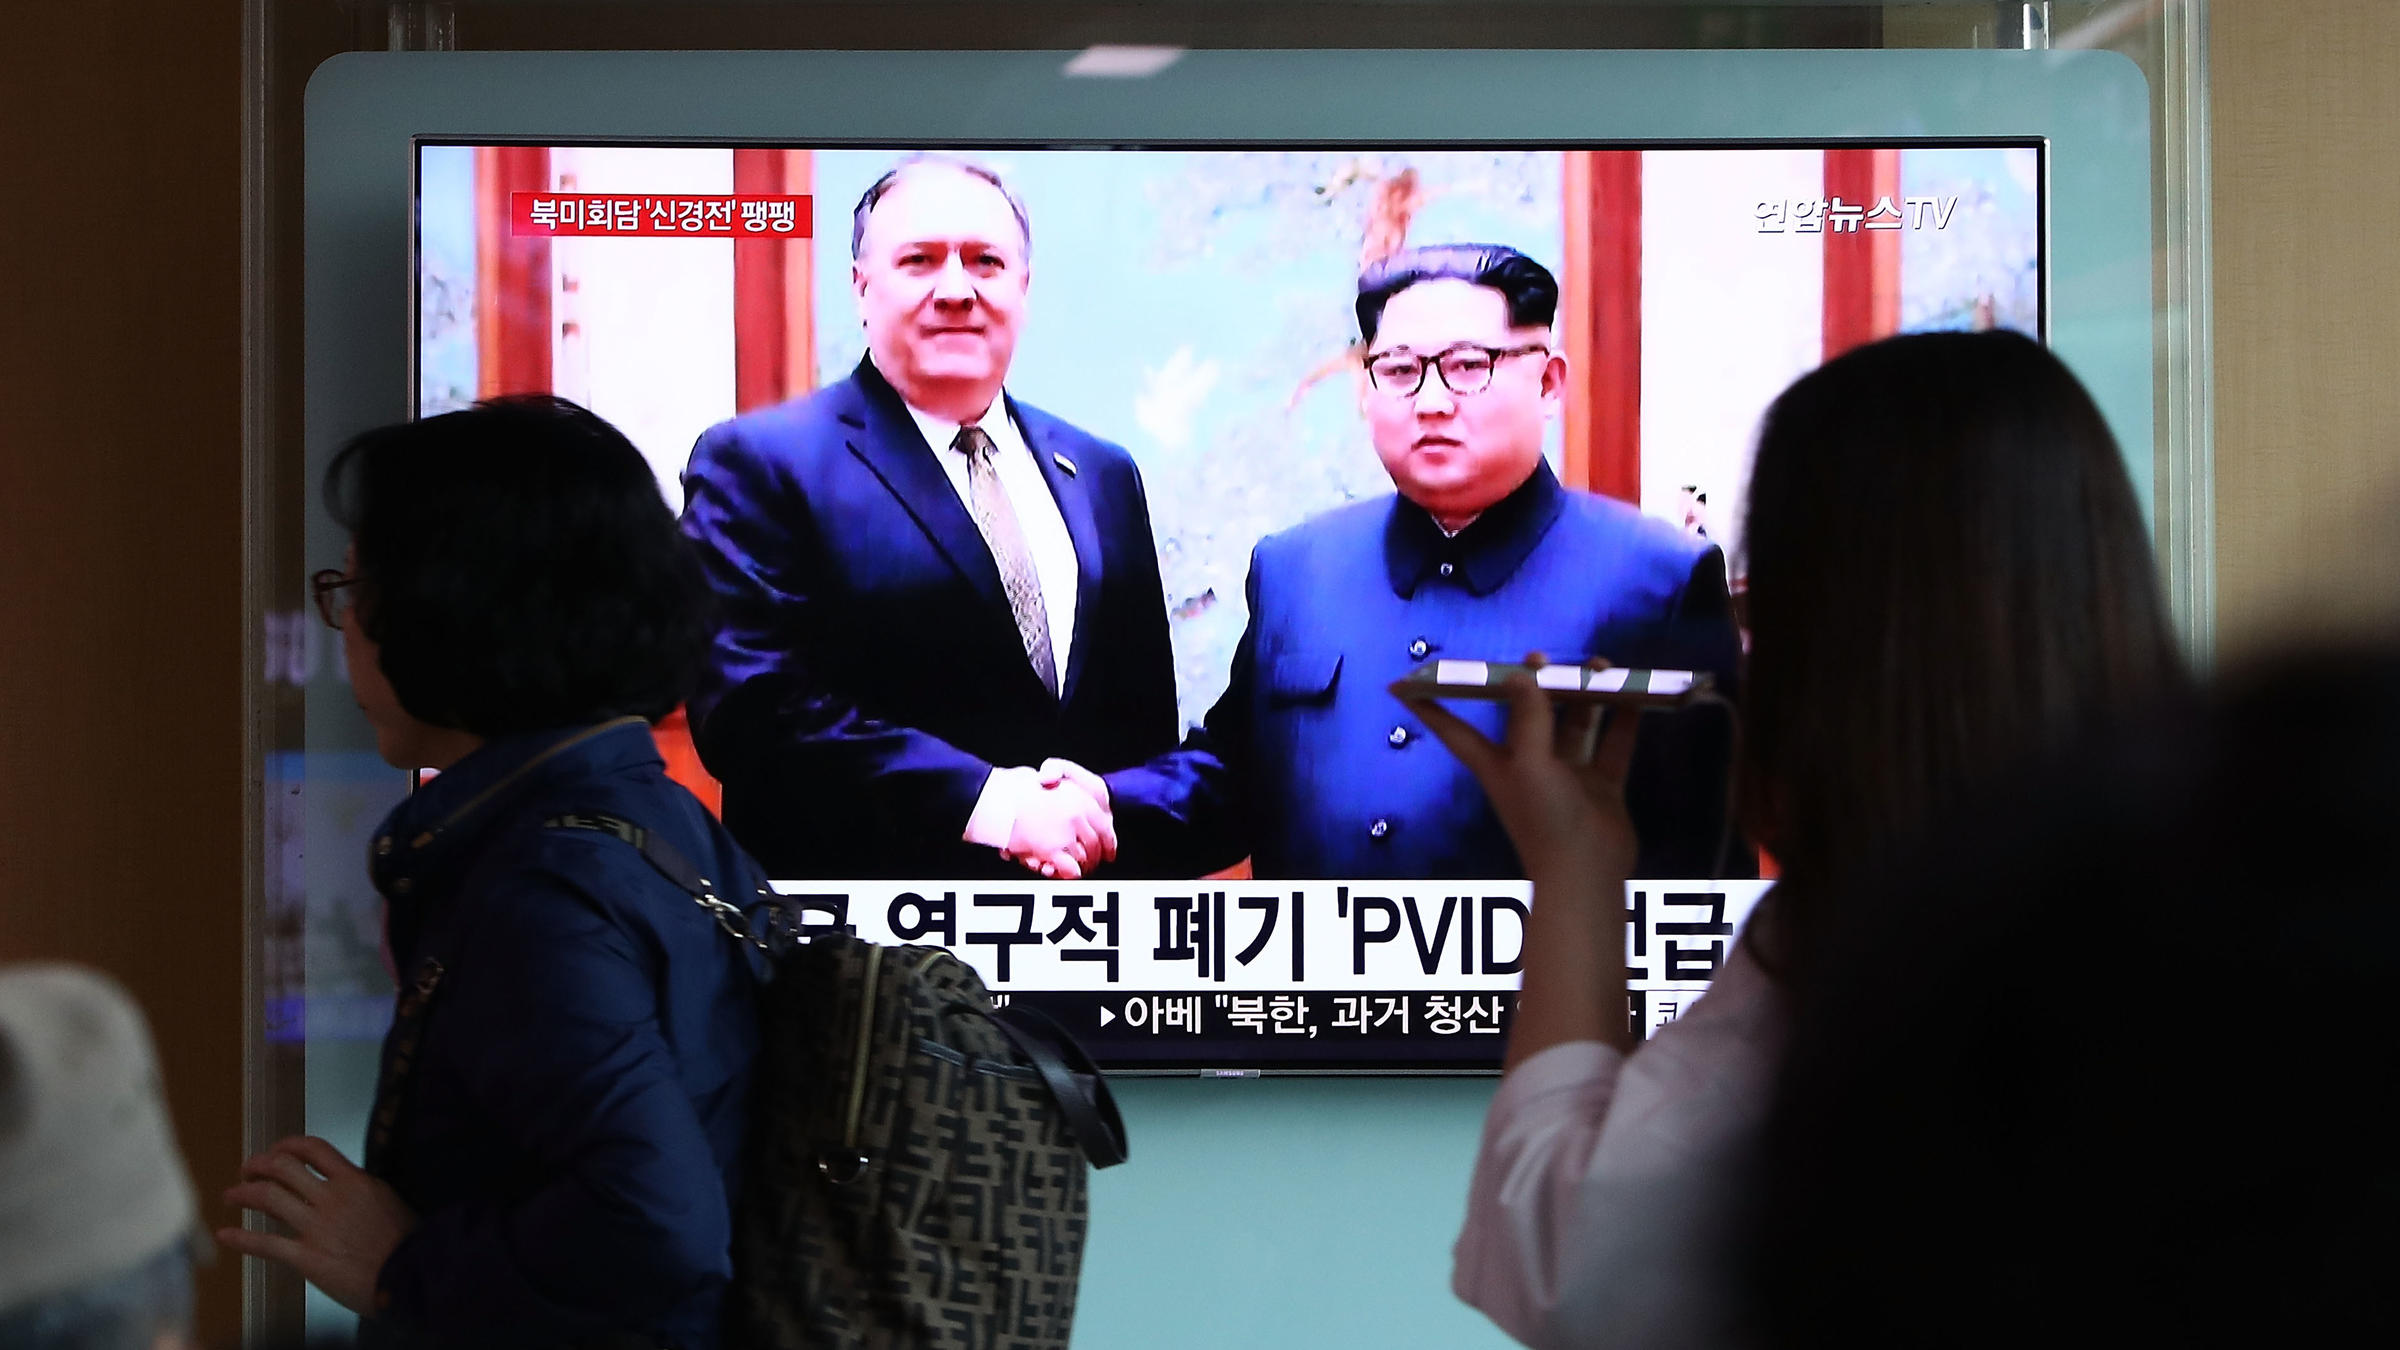 Healthy hostages good sign, but things still tense before US/North Korea talks